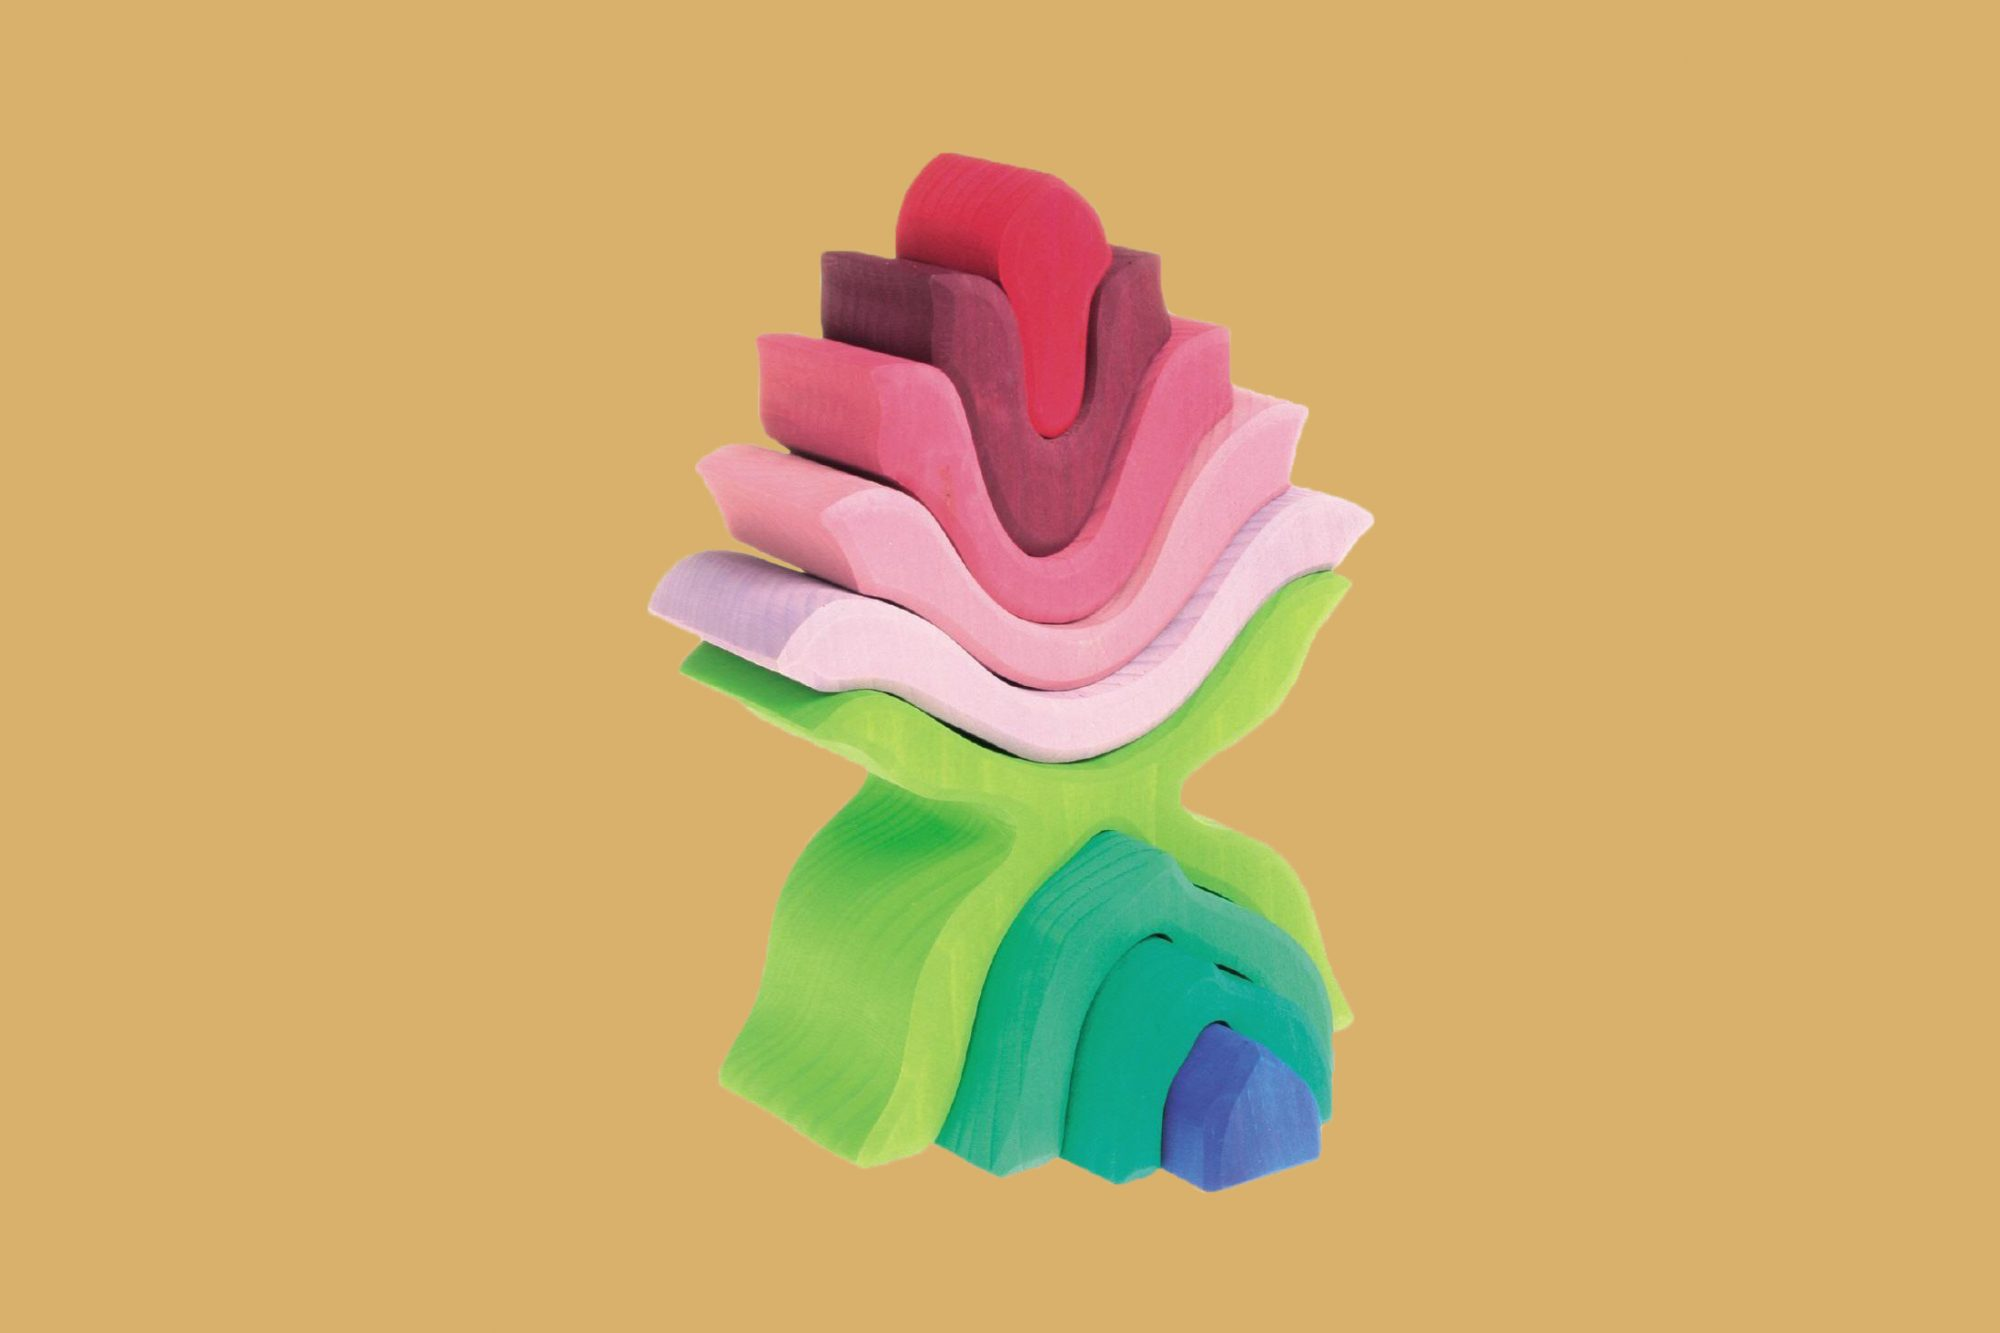 colorful three-dimensional flower puzzle